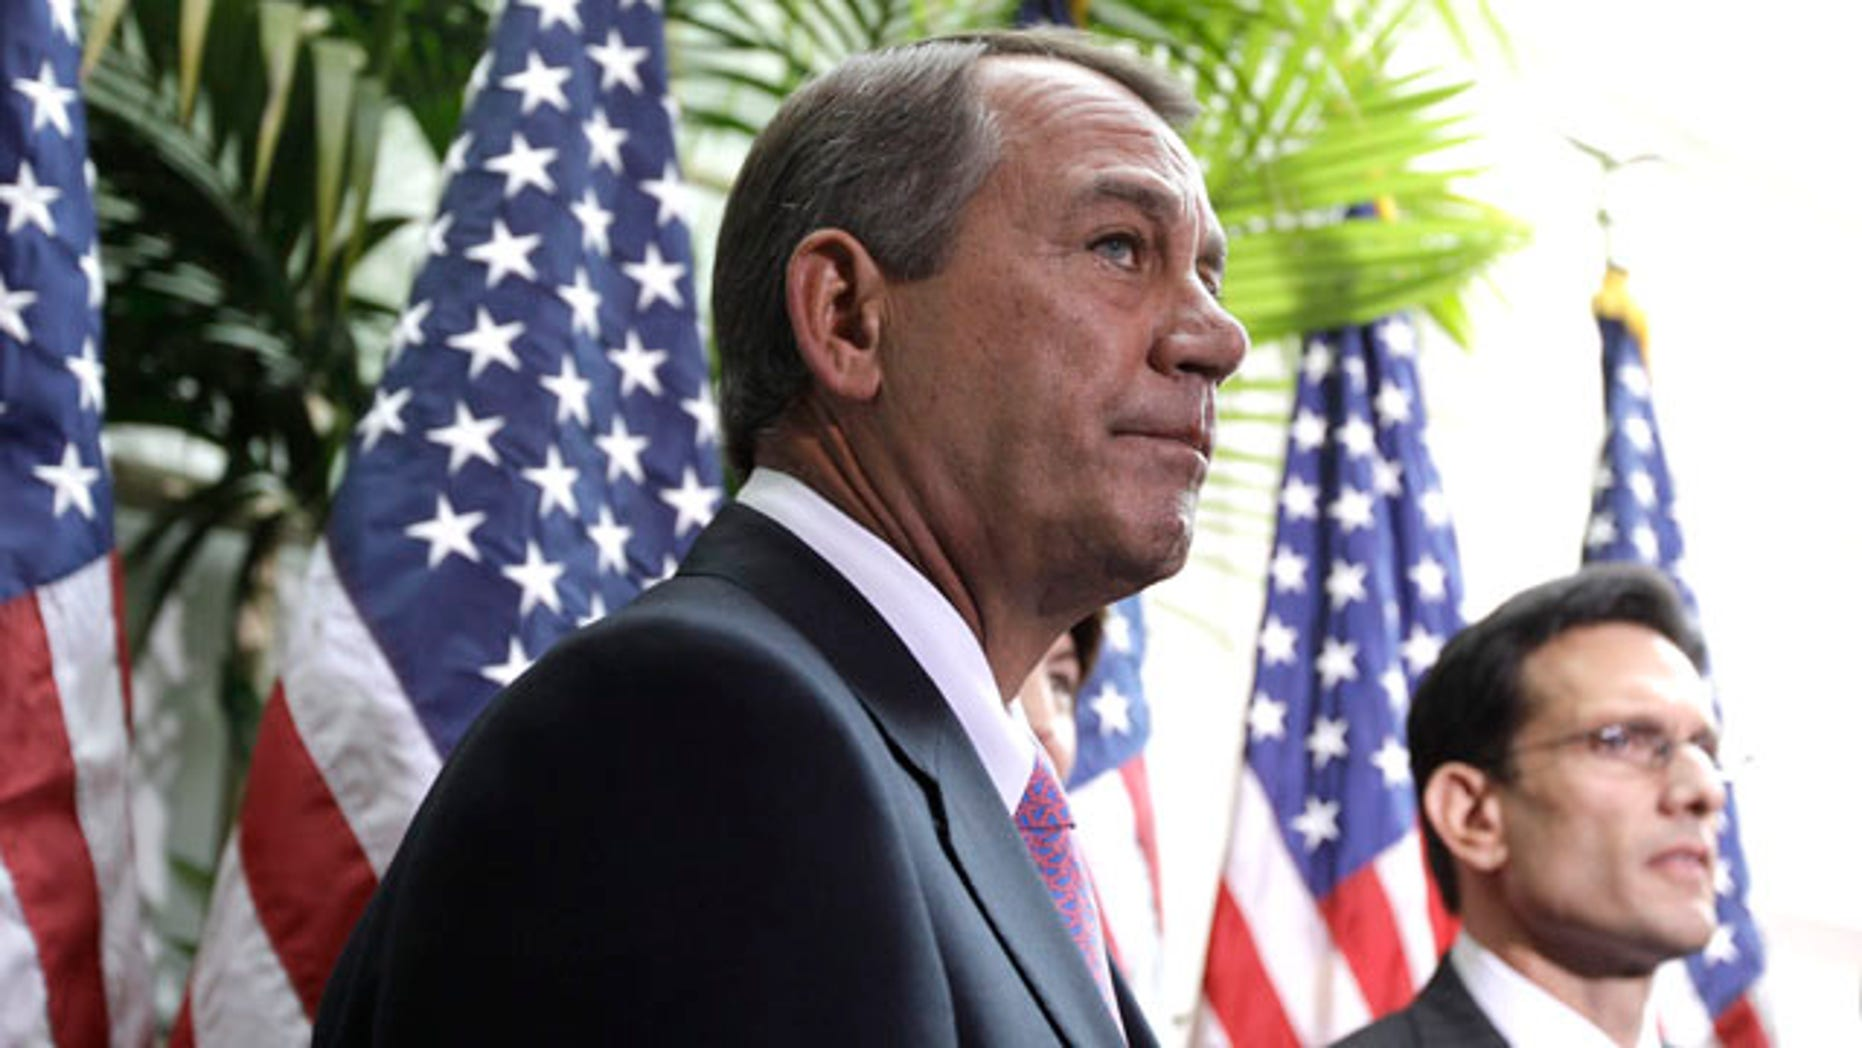 Jan. 25: House Speaker John Boehner of Ohio accompanied by House Majority Leader Eric Cantor of Virginia, listen to a question from reporters on Capitol Hill in Washington, D.C. House Republicans have offered $4 billion in cuts in an effort to prevent a government shutdown.